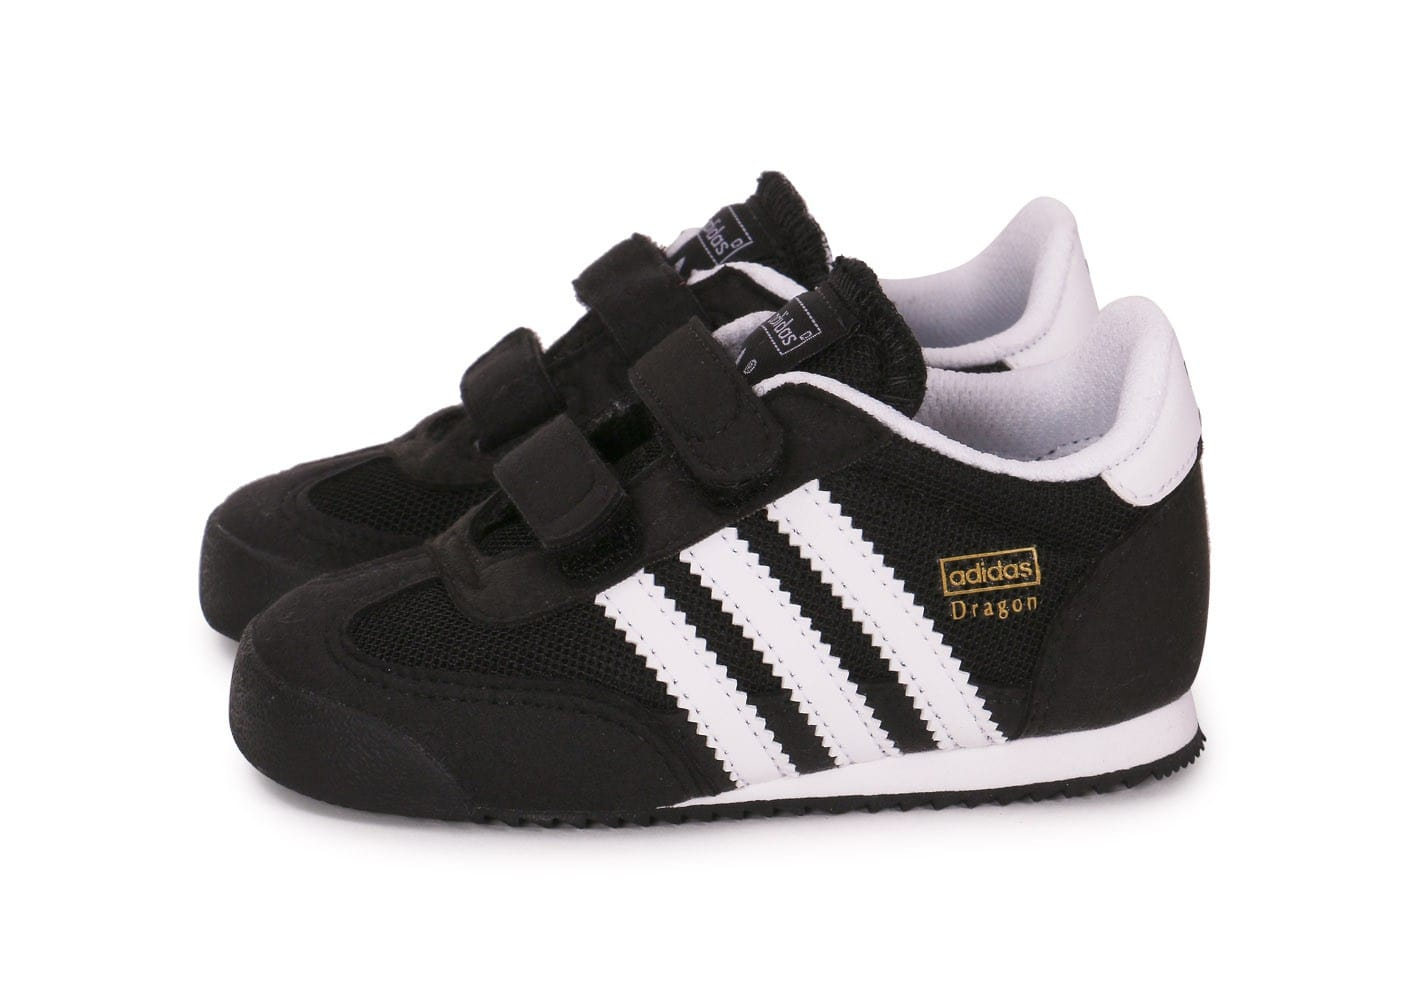 adidas dragon b b noire chaussures adidas chausport. Black Bedroom Furniture Sets. Home Design Ideas